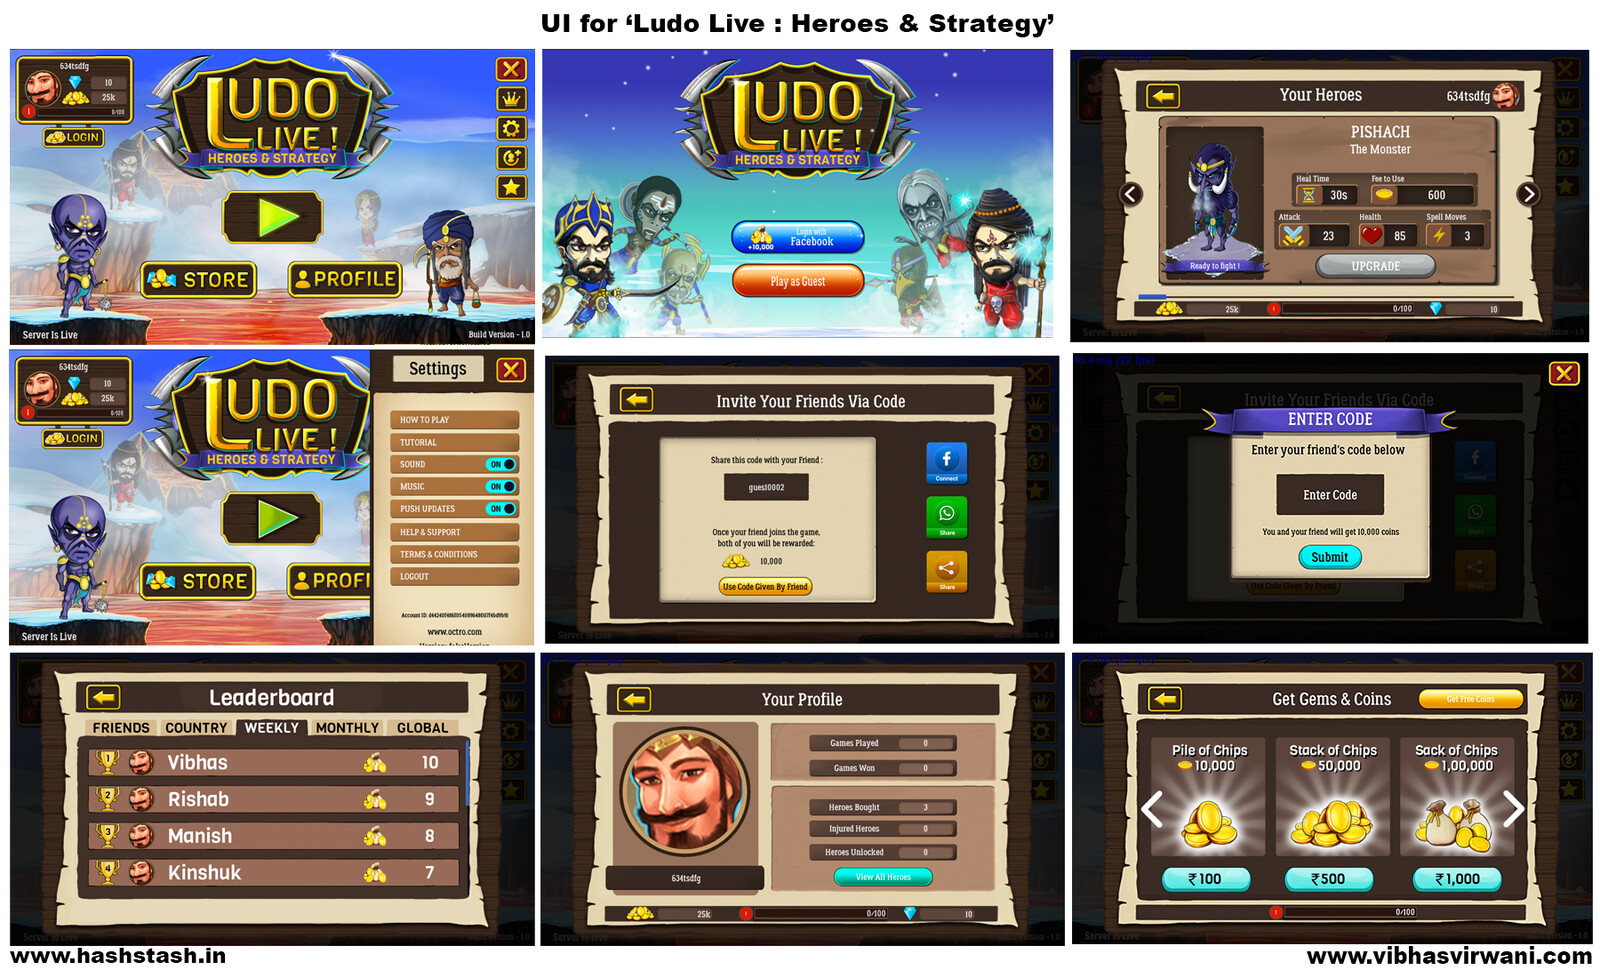 UI game screen designs for the android/ios game.